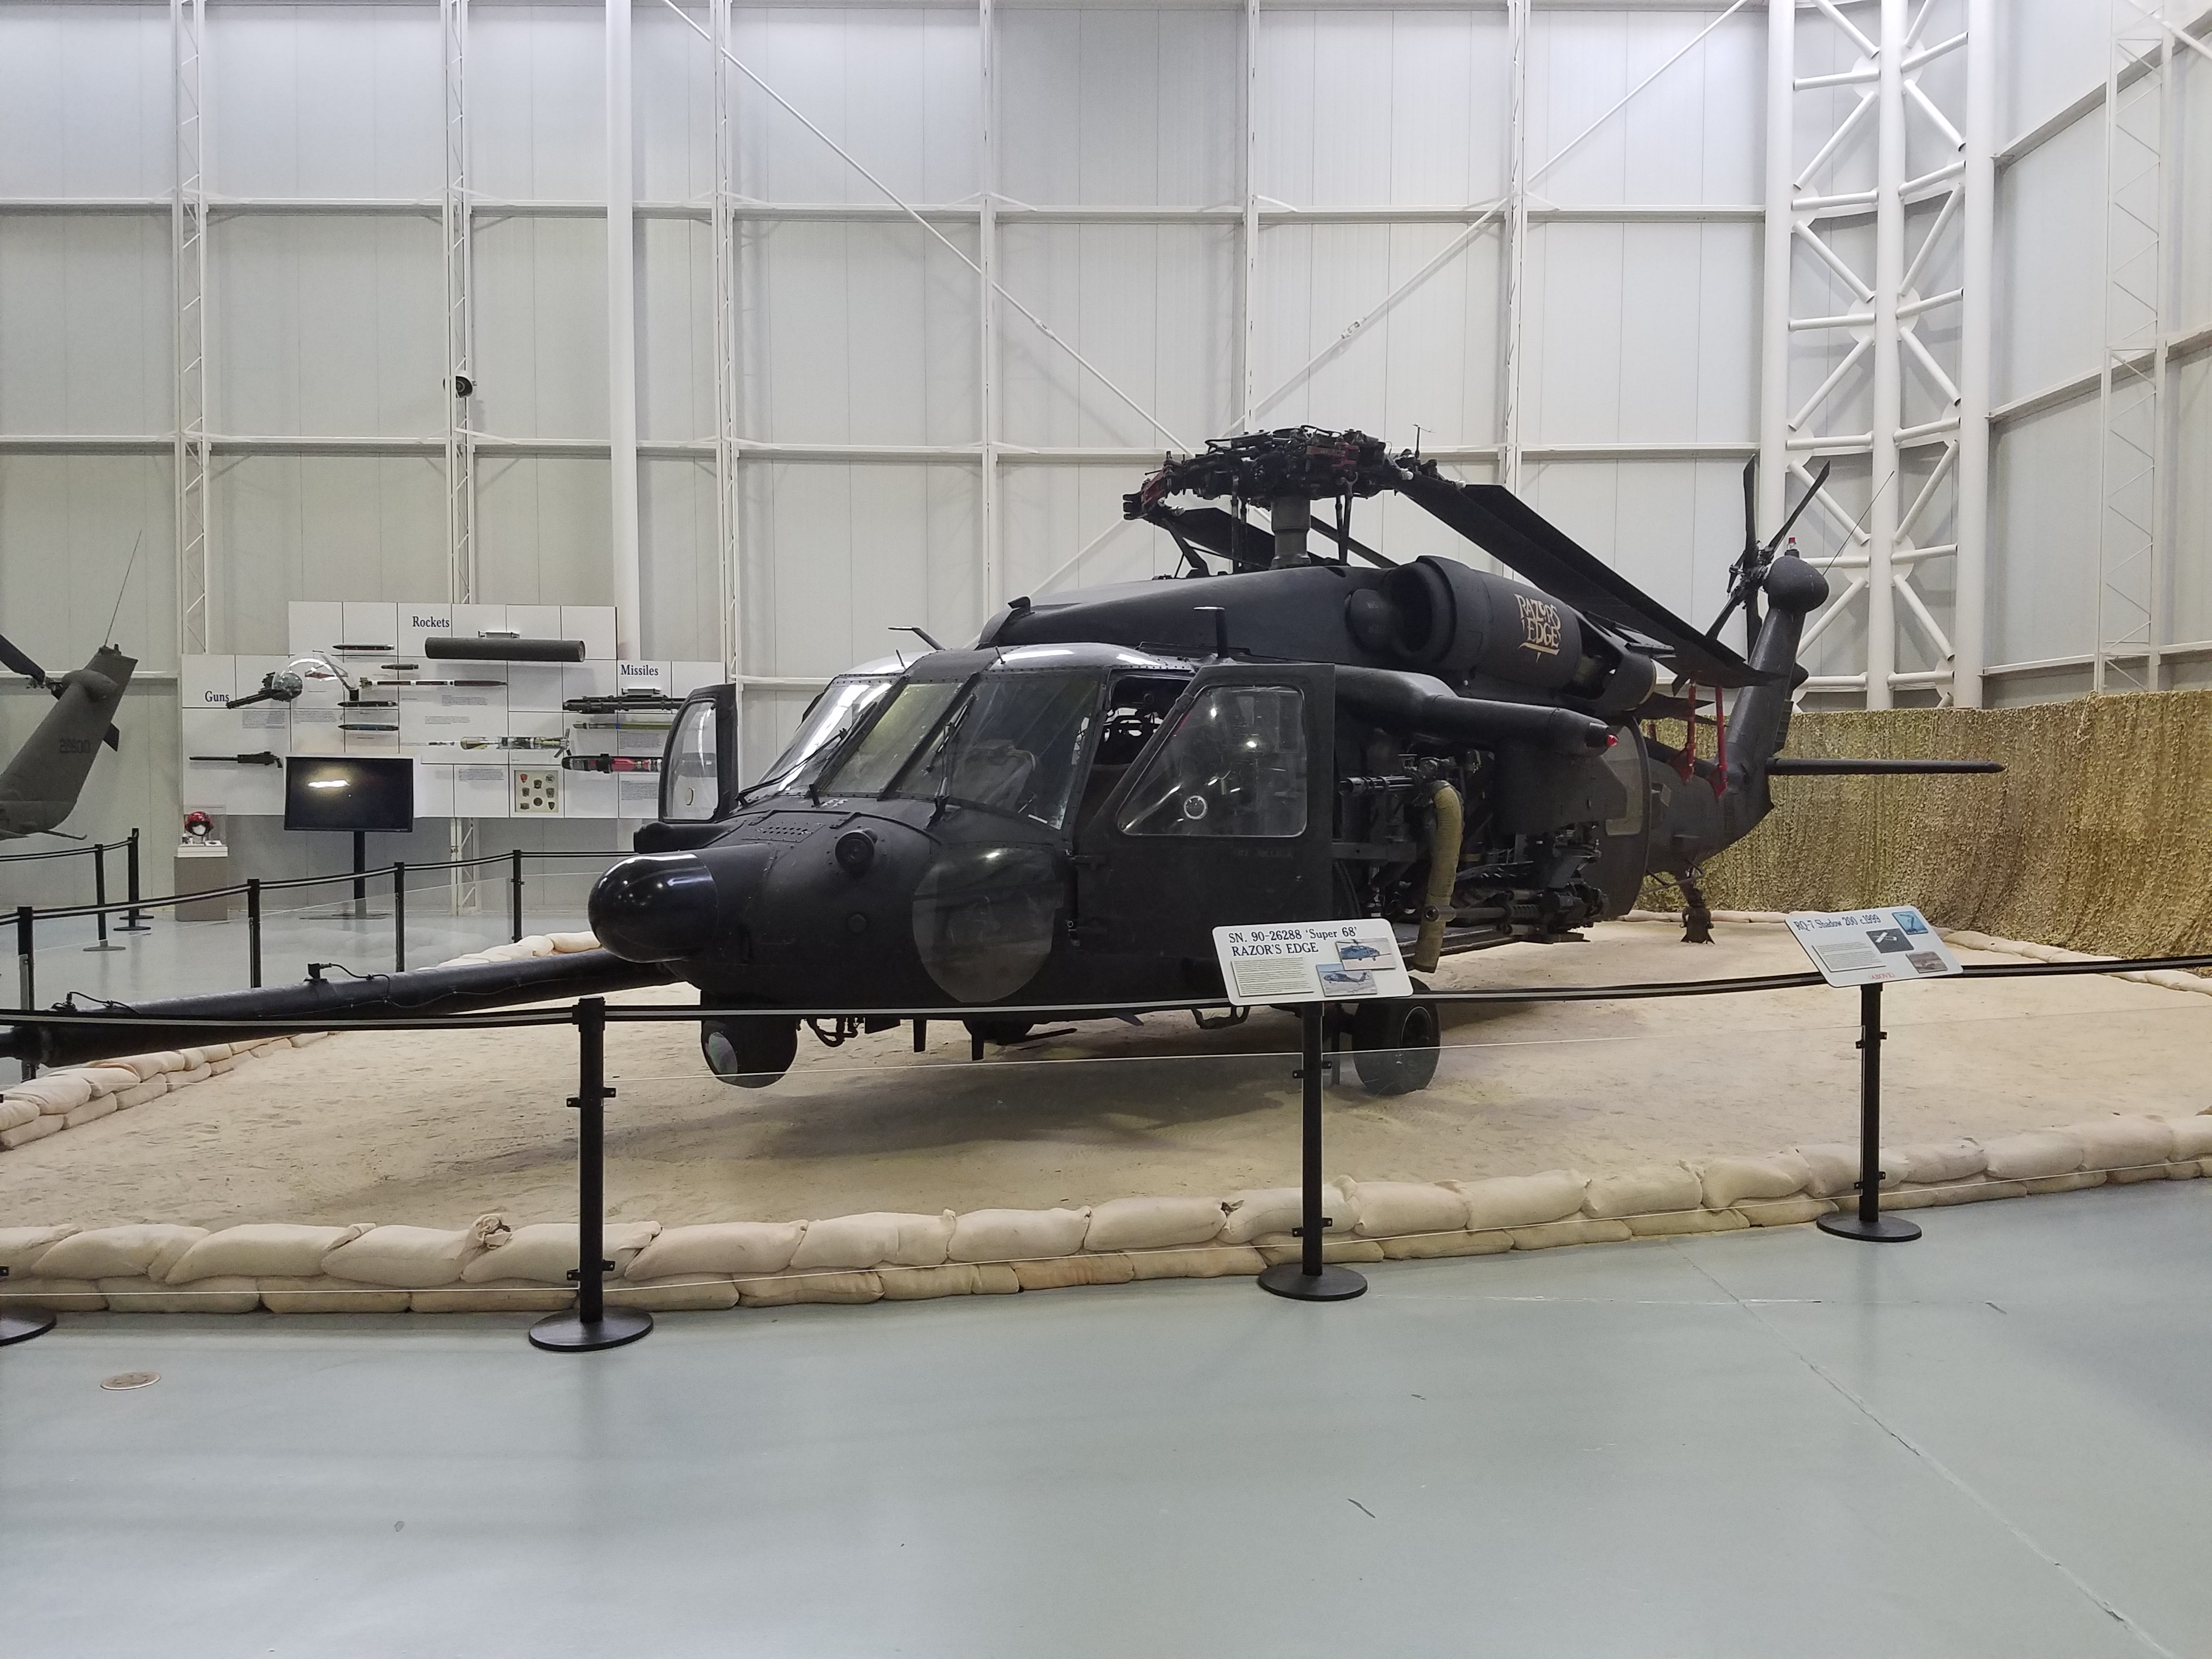 Rotary Wing United States Army Aviation Museum